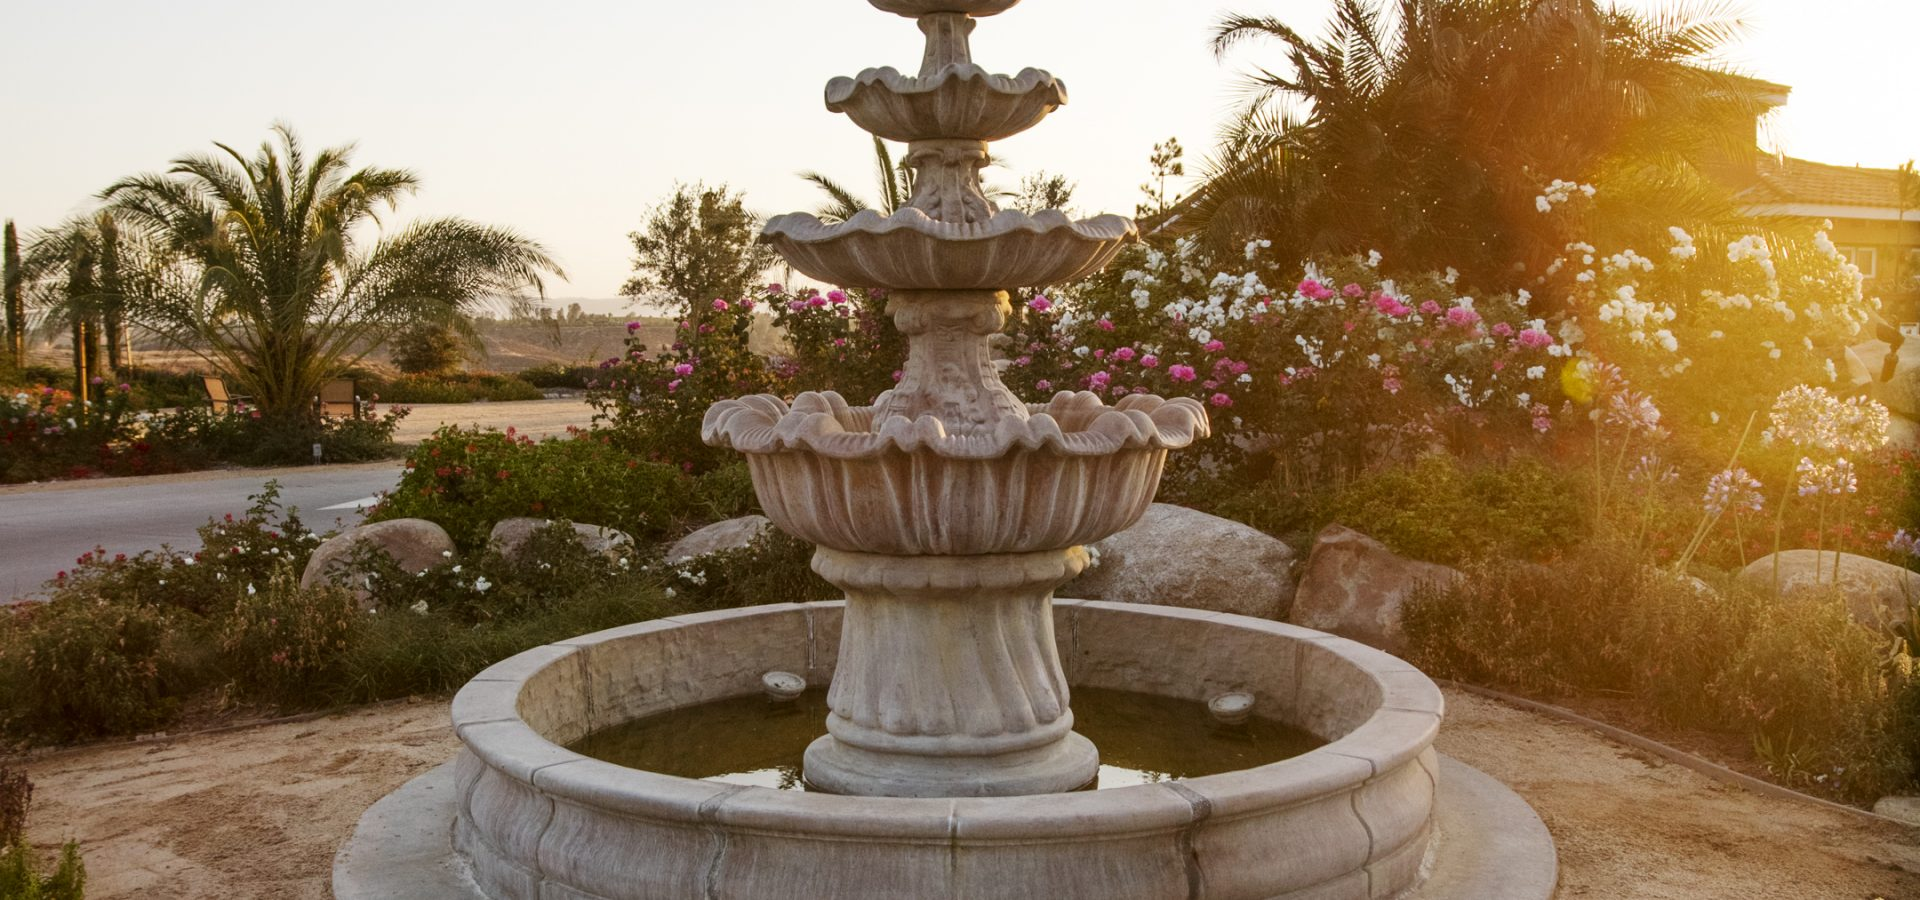 water fountain surrounded by garden landscape in Temecula